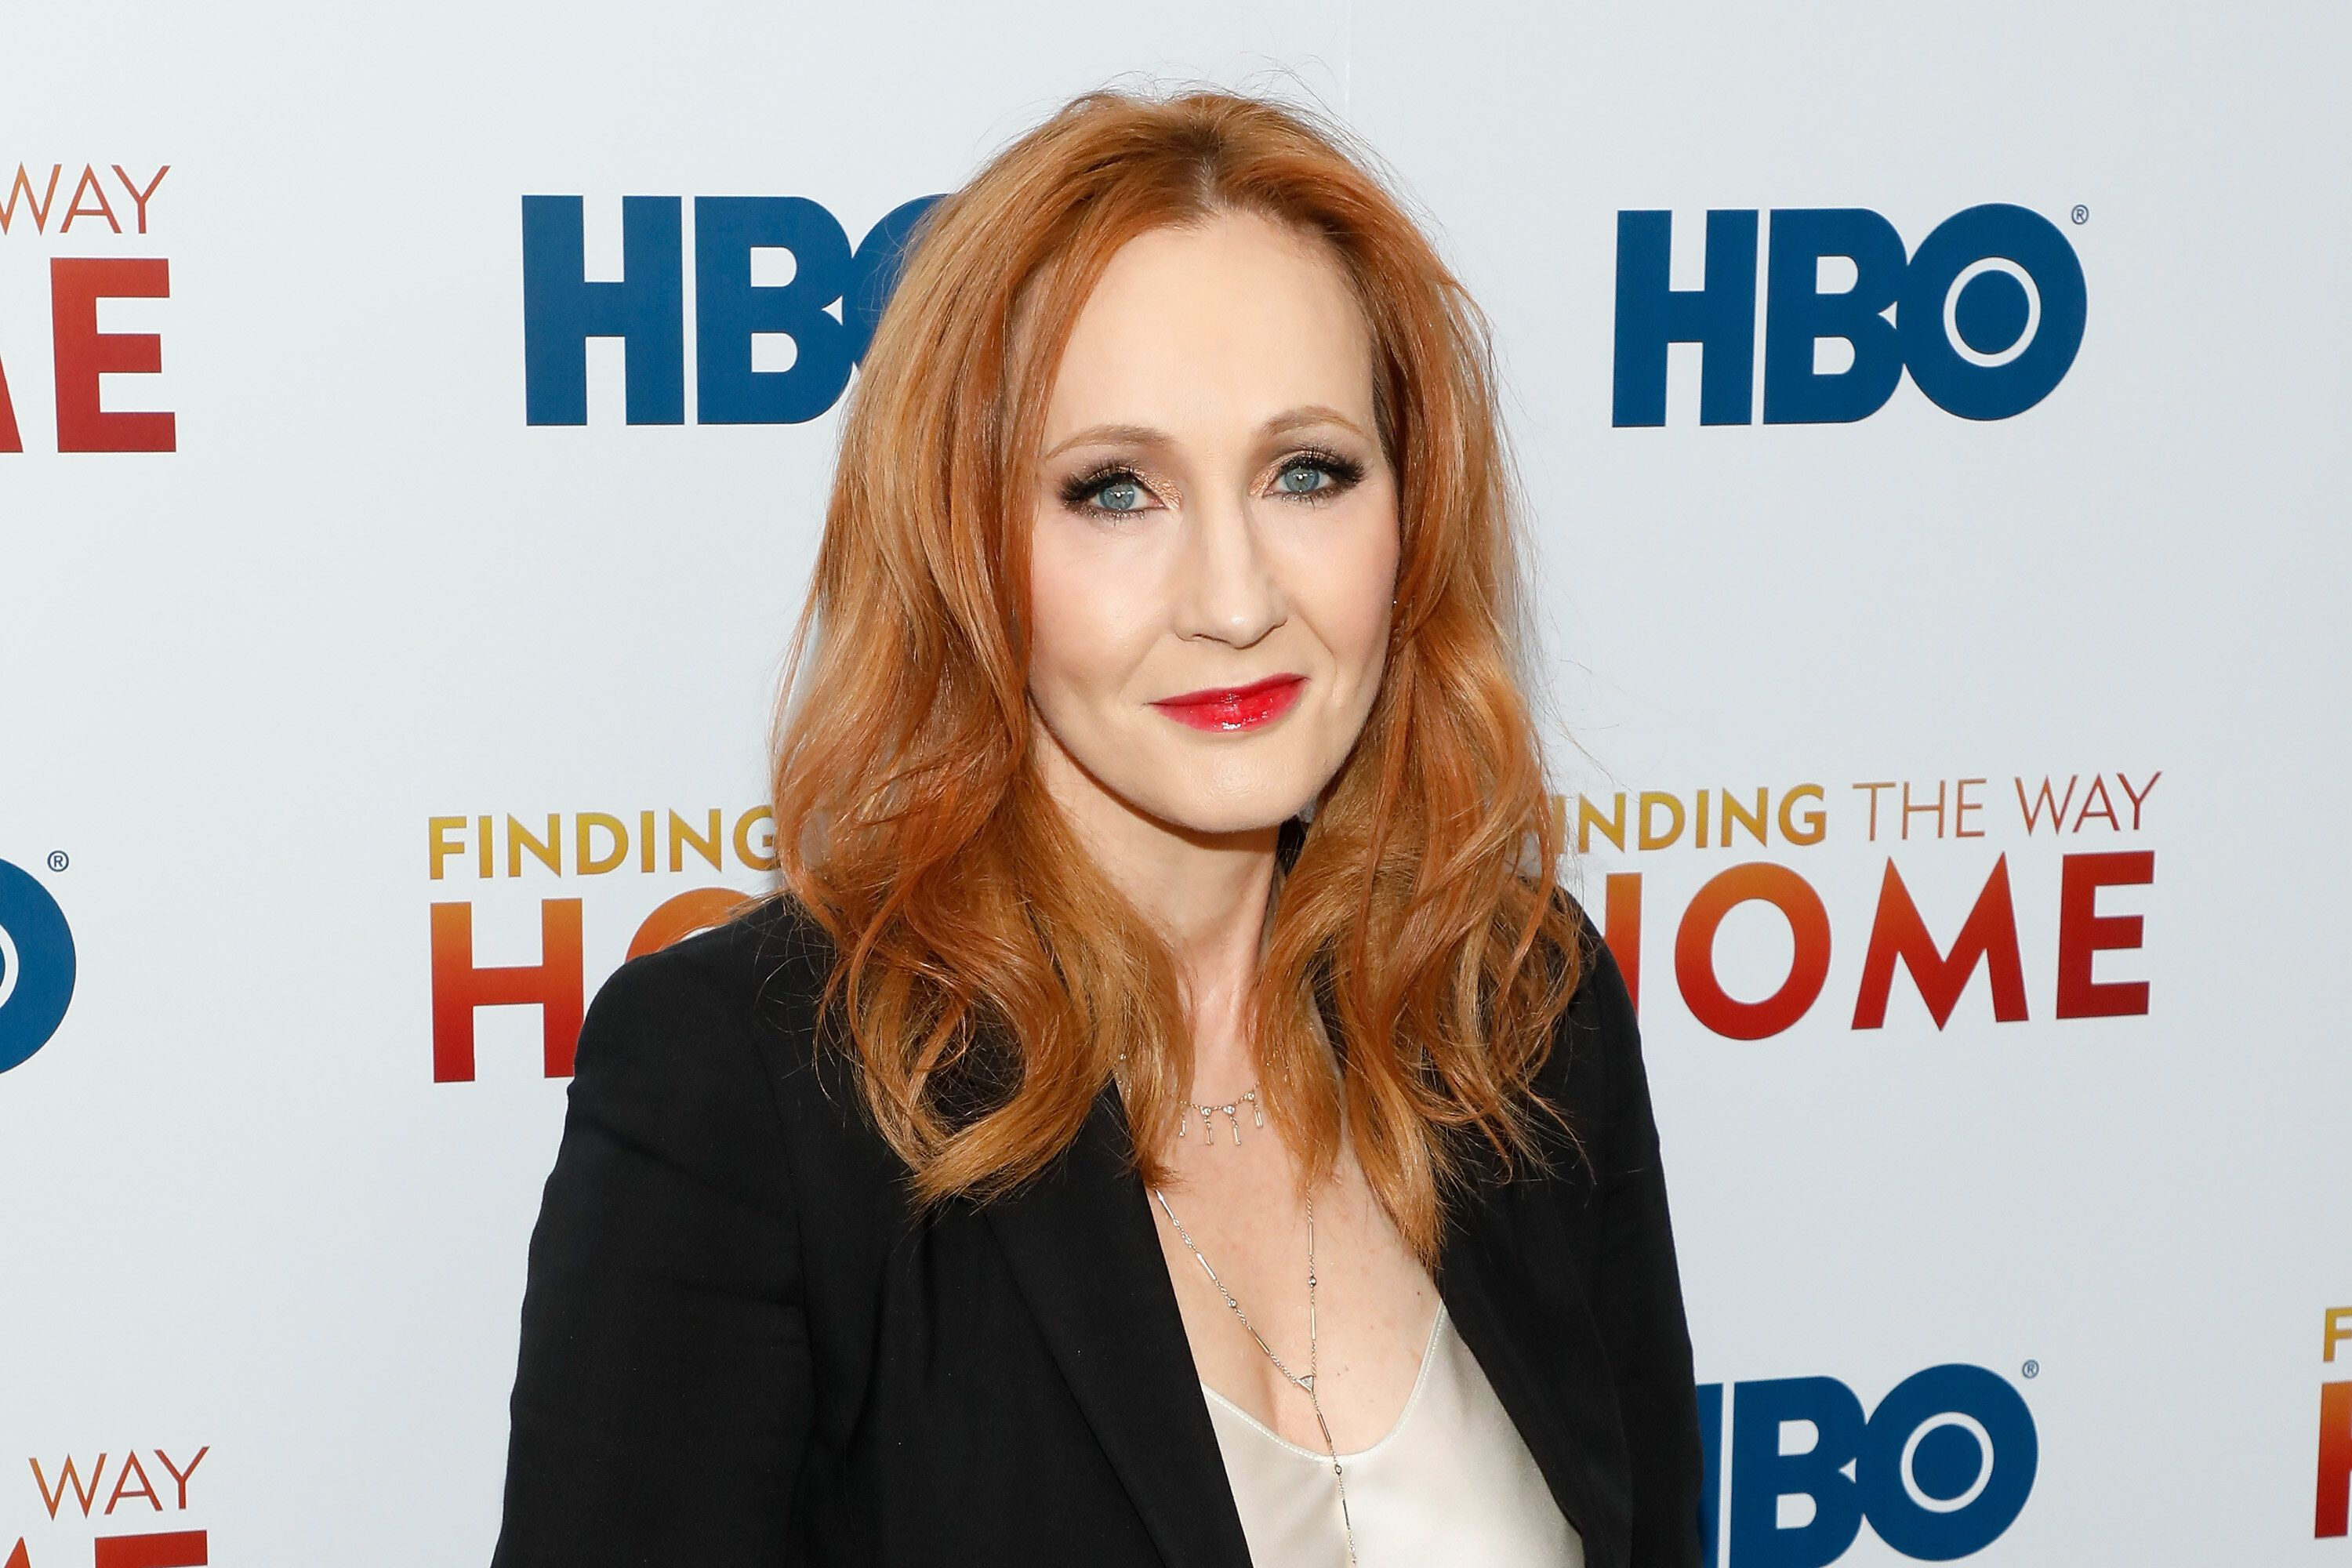 Jk Rowling Faces Backlash After Support For Woman Fired